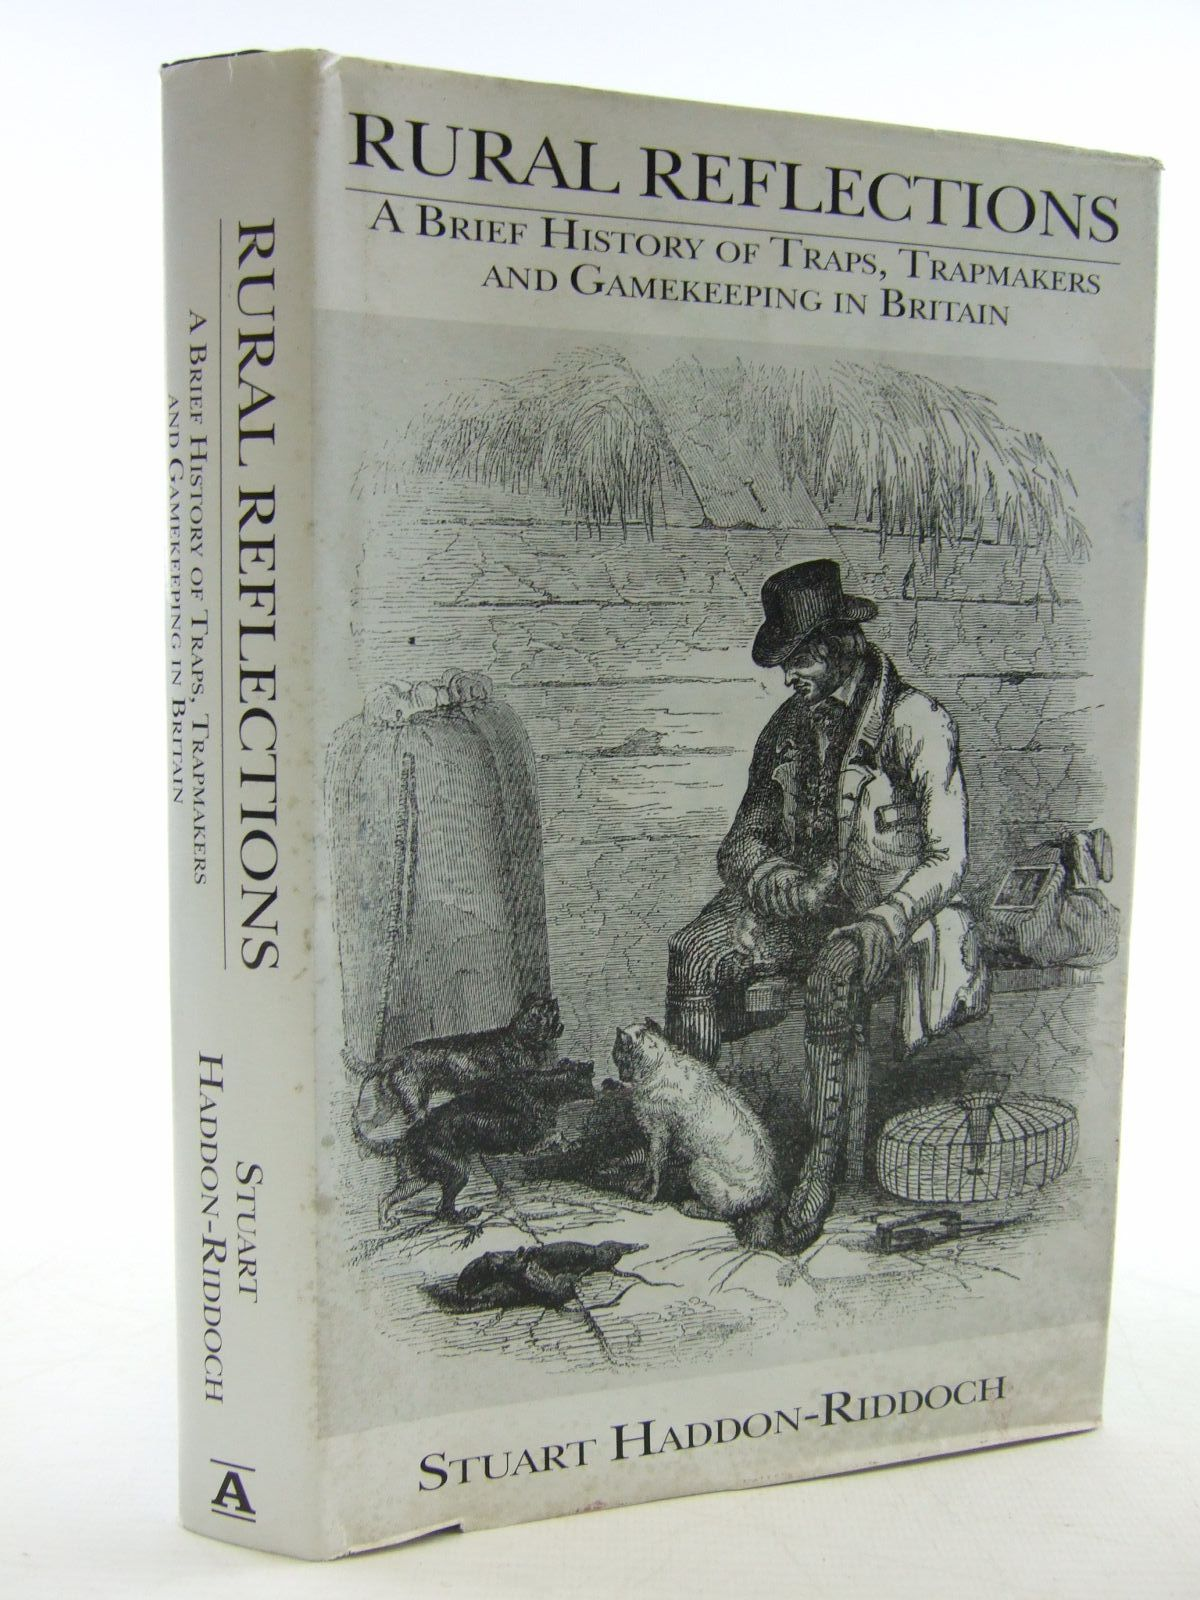 Photo of RURAL REFLECTIONS A BRIEF HISTORY OF TRAPS, TRAPMAKING AND GAMEKEEPING IN BRITAIN written by Haddon-Riddoch, Stuart published by Argyll Publishing (STOCK CODE: 1707392)  for sale by Stella & Rose's Books